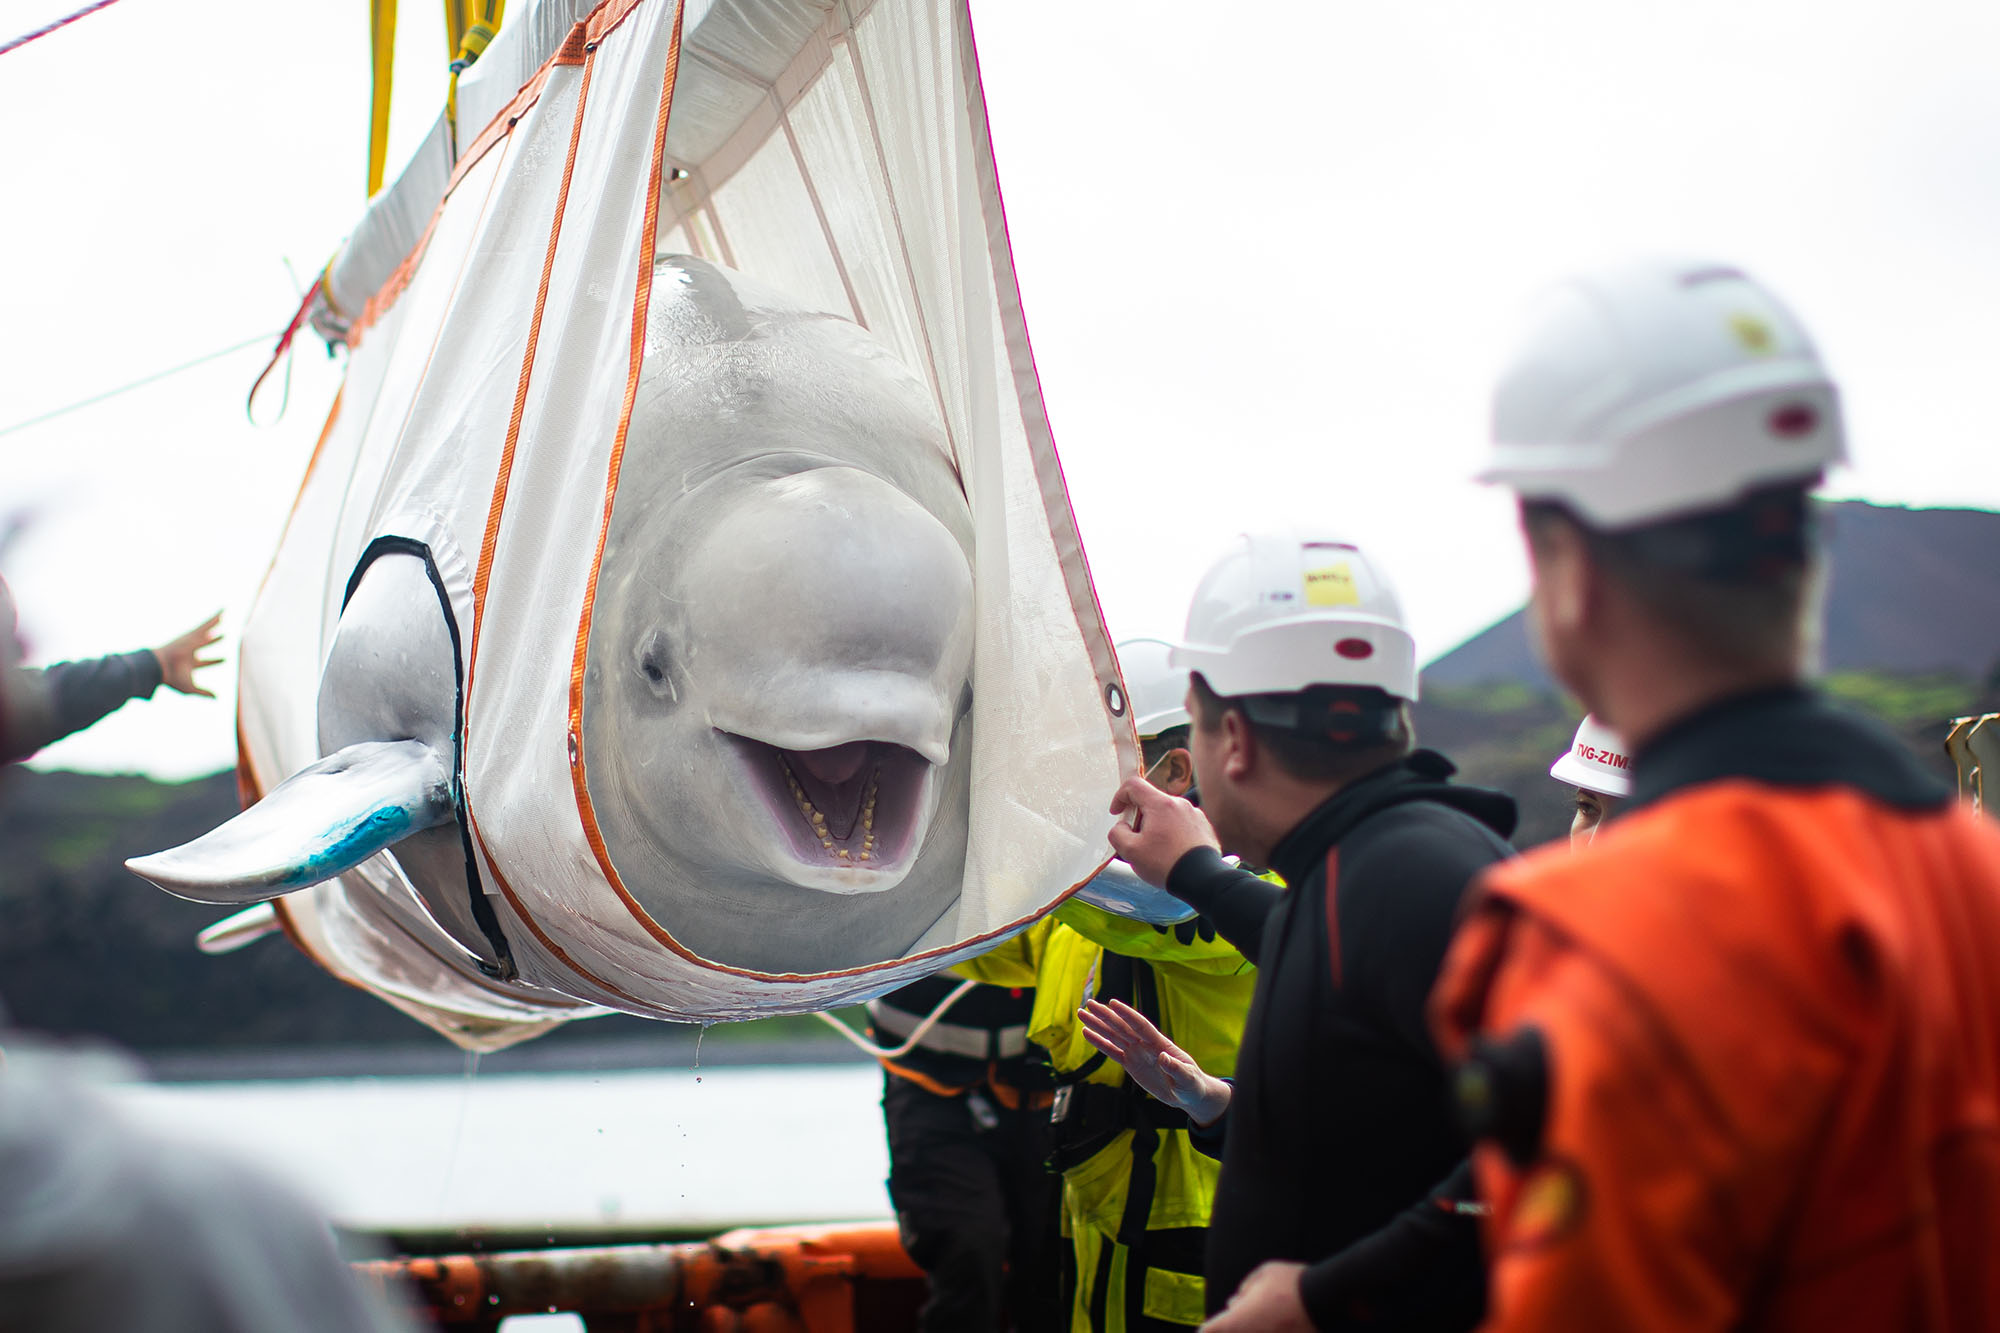 Beluga whales smile as they return to sea after years in captivity